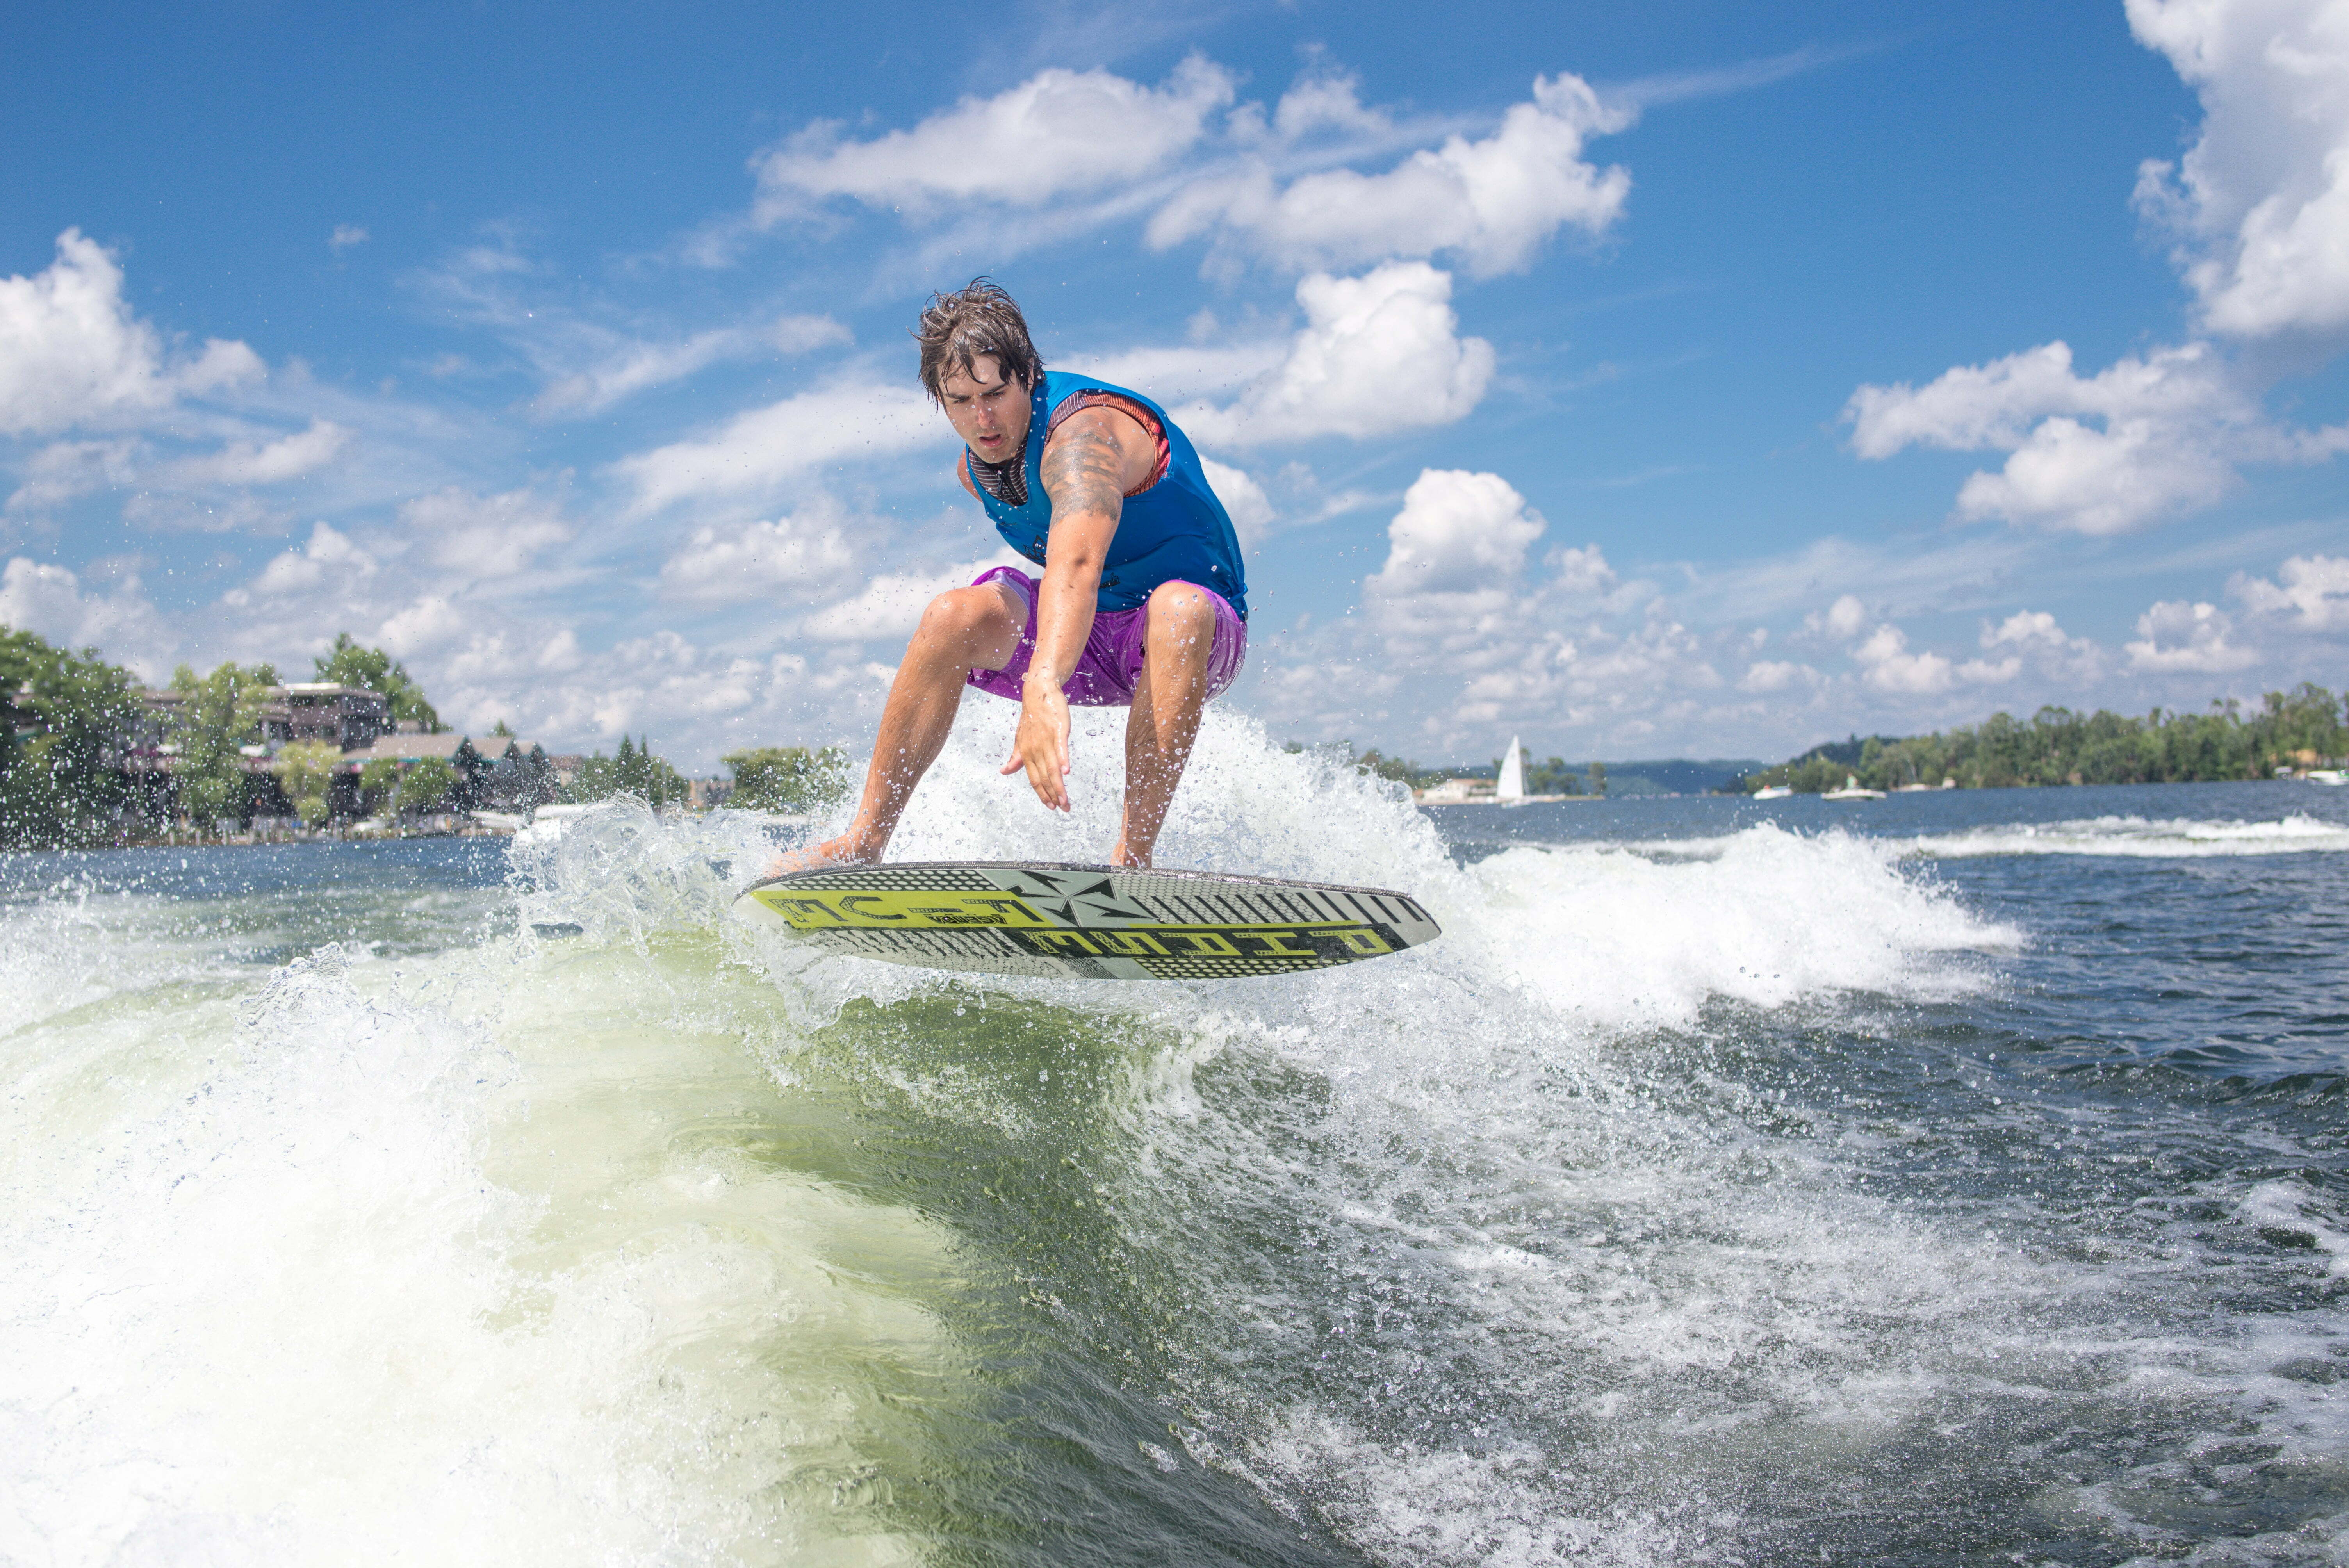 How to Get Started in Extreme Watersports